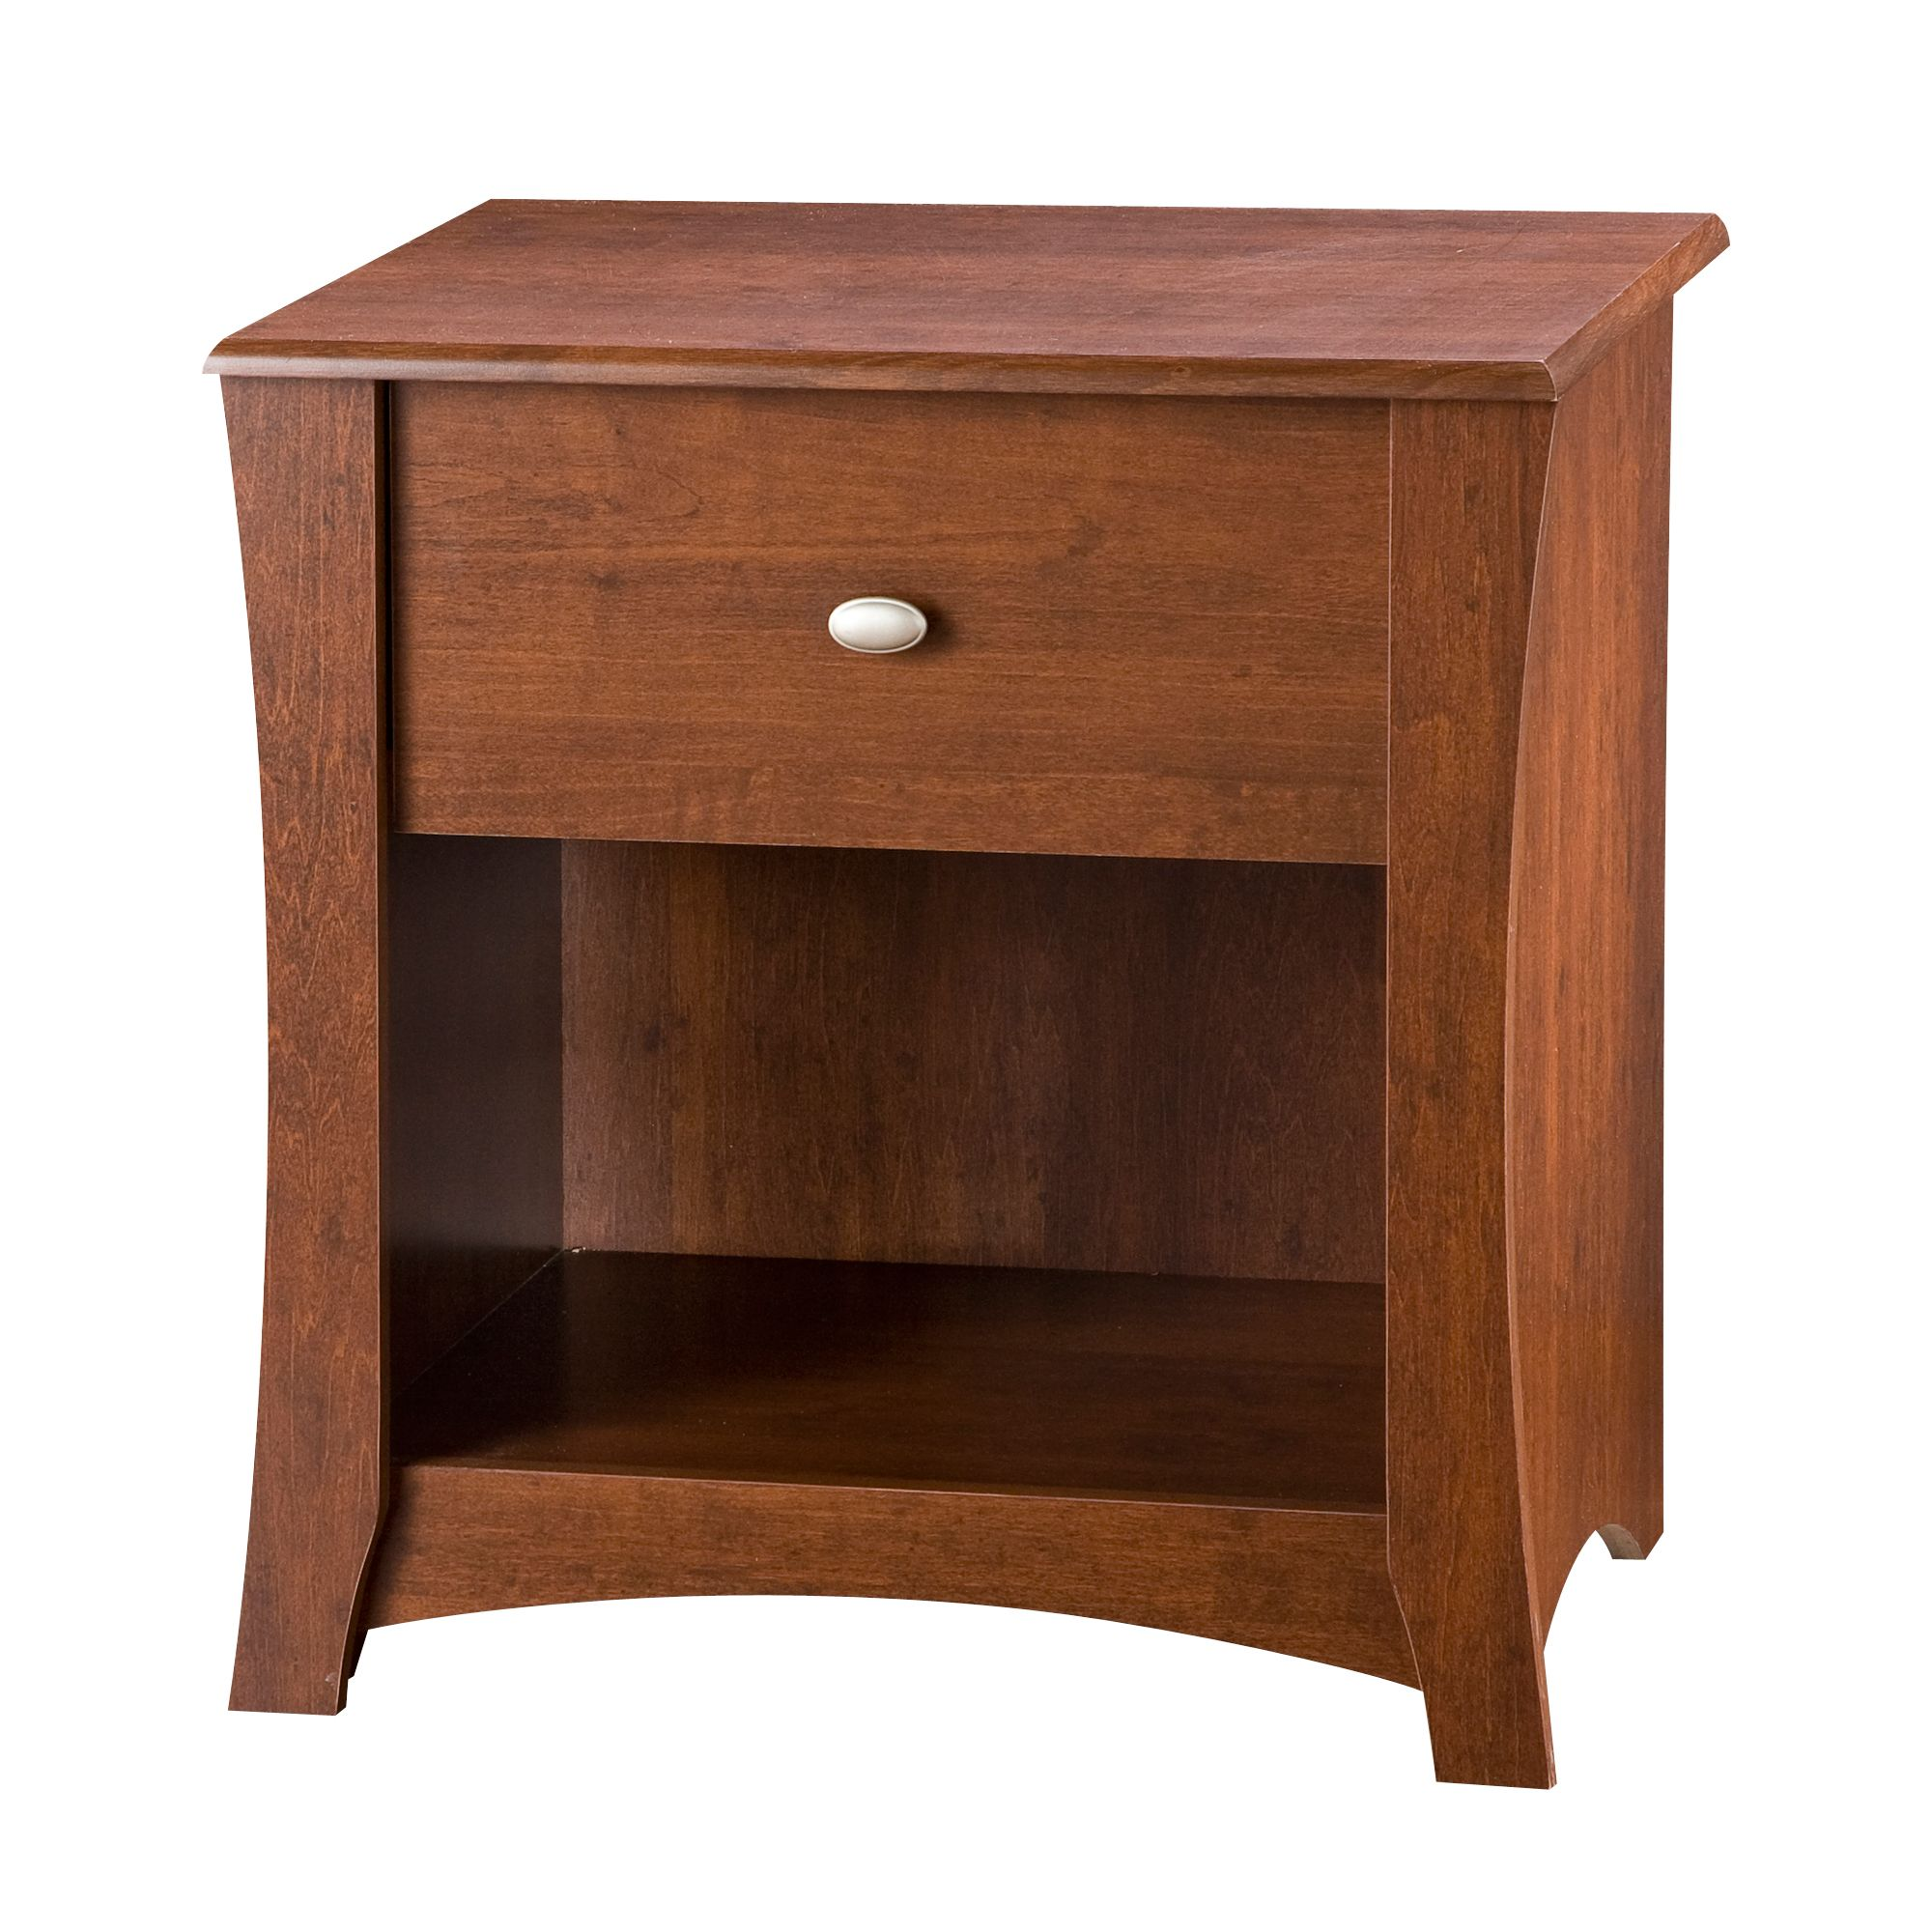 Moon Night Stand - Classic Cherry                                                                                                at mygofer.com